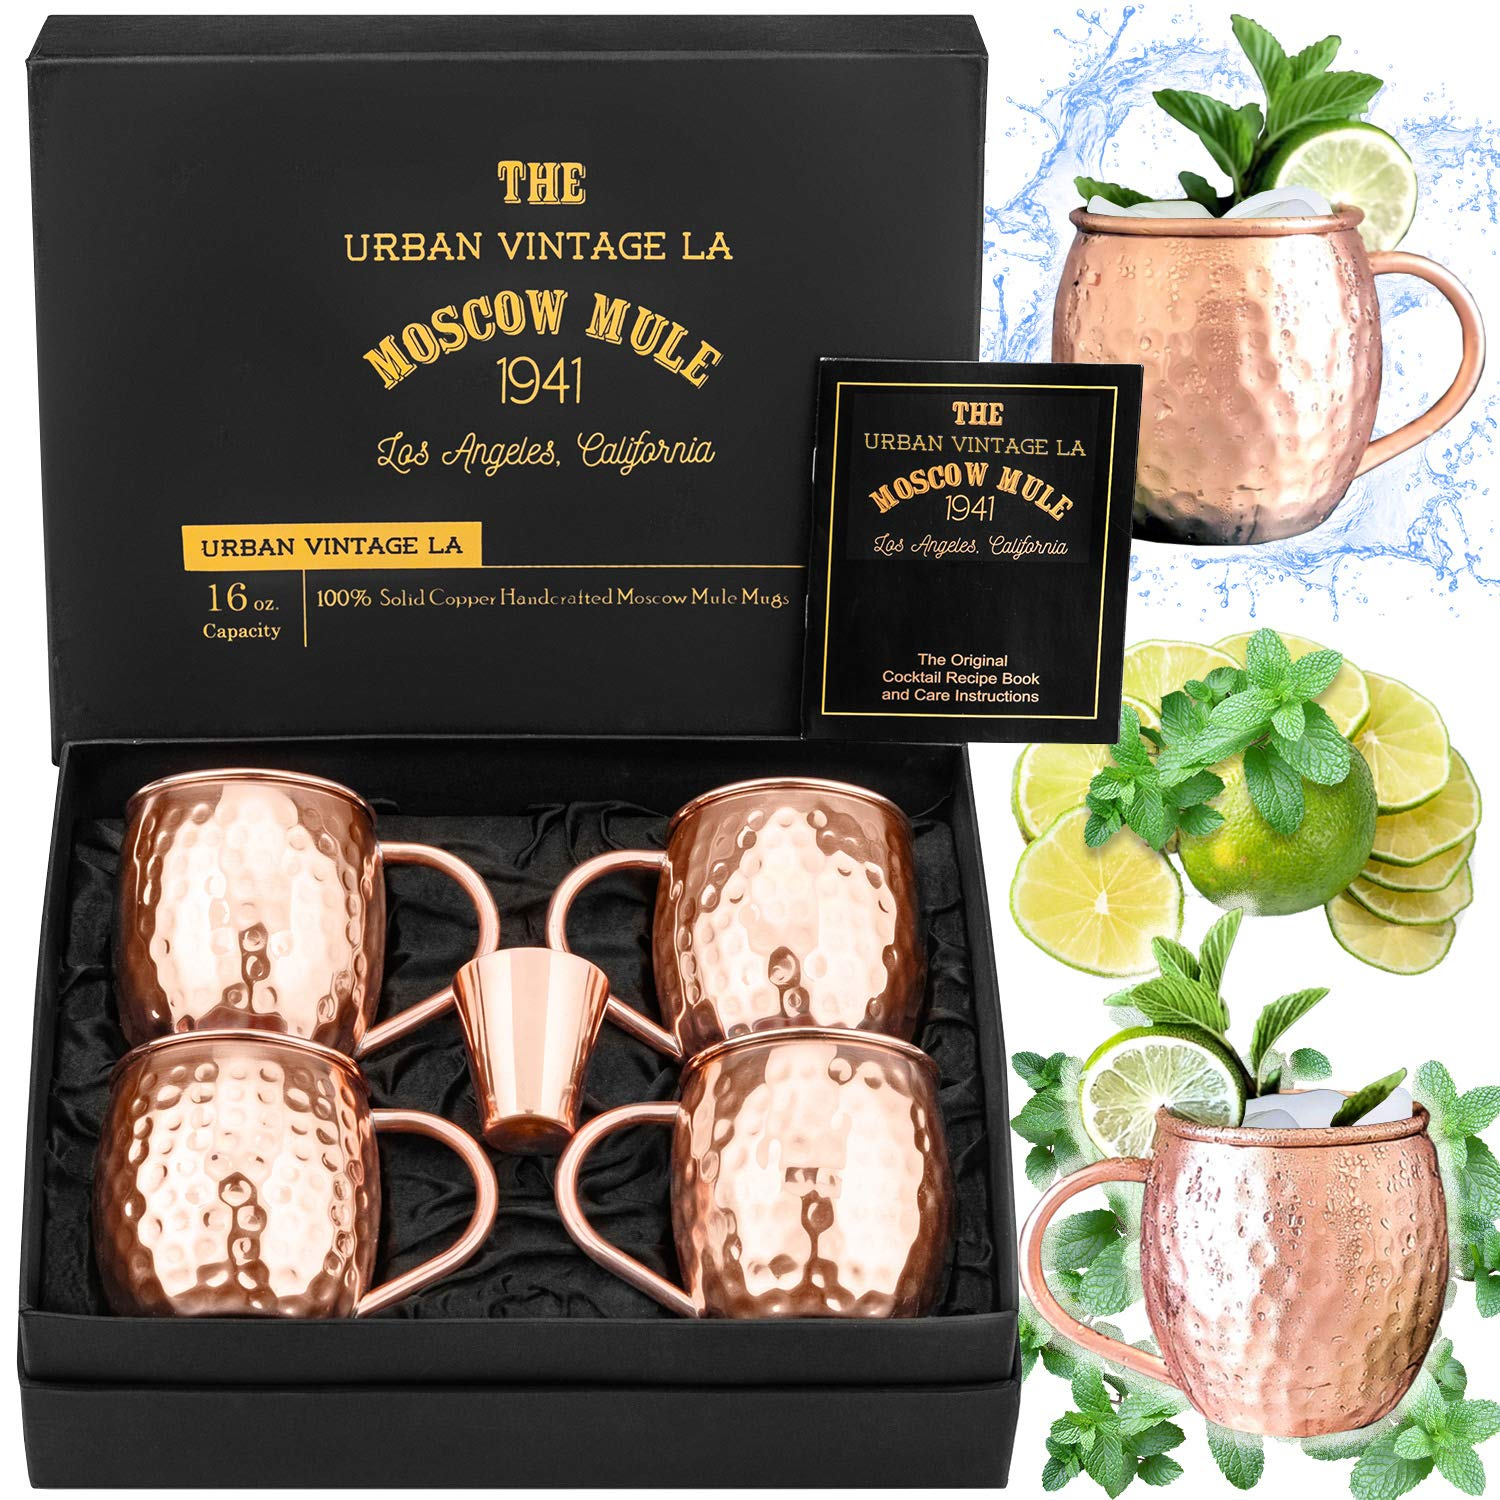 Moscow Mule Copper Mugs Set of 4 with Shot Glass & Recipe Book in Large Gift Box, Premium Handcrafted Food-Safe Hammered 16 oz Real Copper Cups for Moscow Mules, Solid Copper Luxury Gift Set by Urban Vintage LA